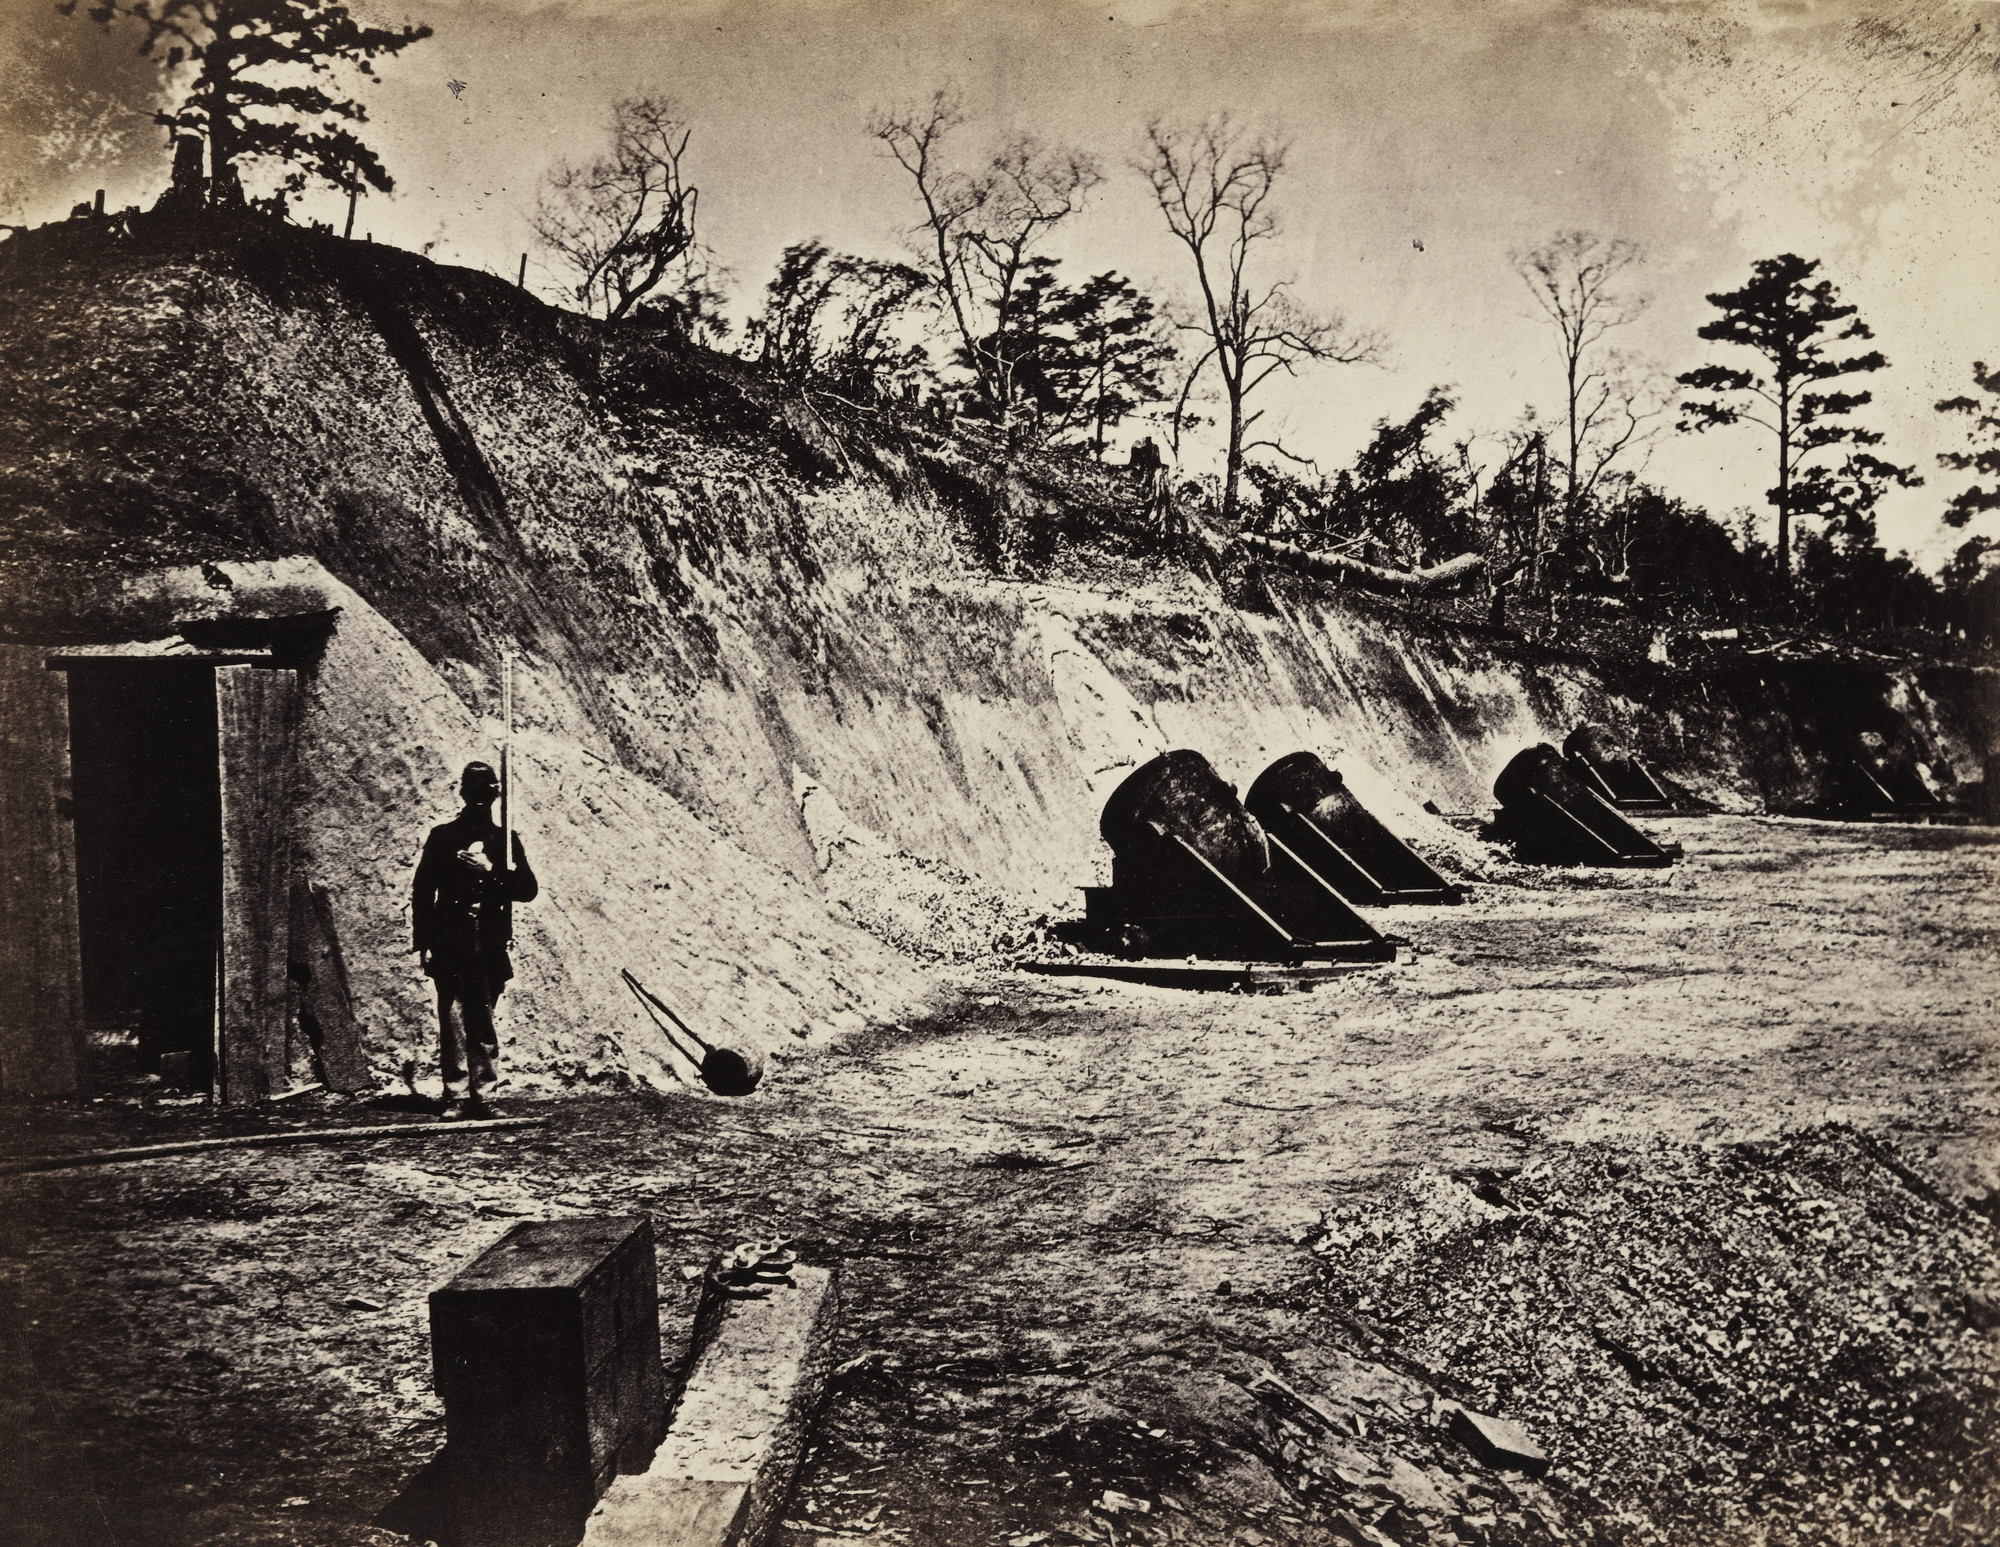 Alexander Gardner. Battery No 4, near Yorktown, Virginia. May, 1862